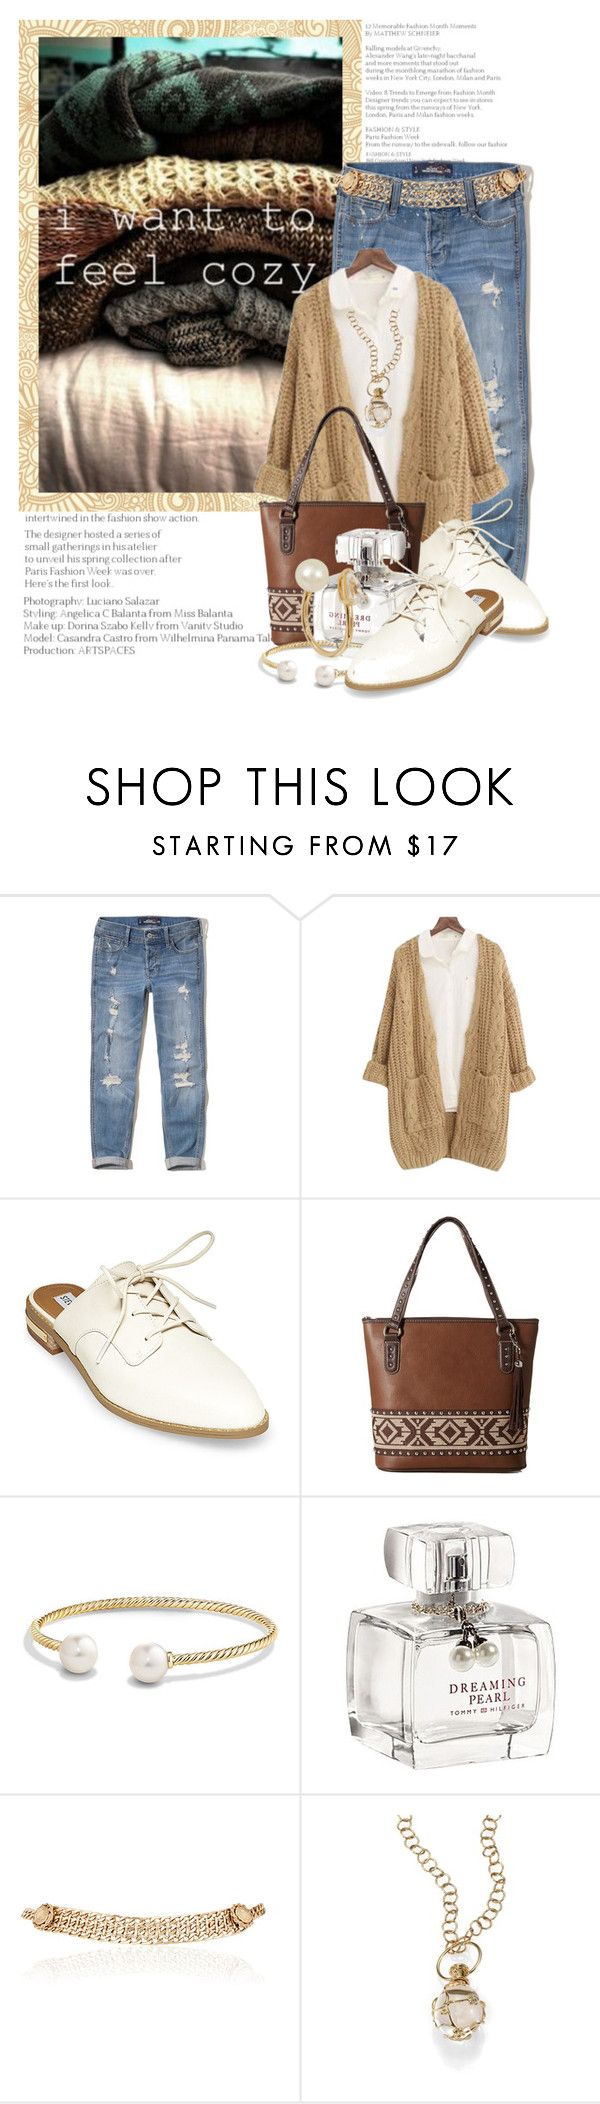 """I want to feel cozy......"" by queenrachietemplateaddict ❤ liked on Polyvore featuring Hollister Co., Chicnova Fashion, Steve Madden, M&F Western, David Yurman, Debenhams, Maison Mayle, Temple St. Clair, Anissa Kermiche and jeans"